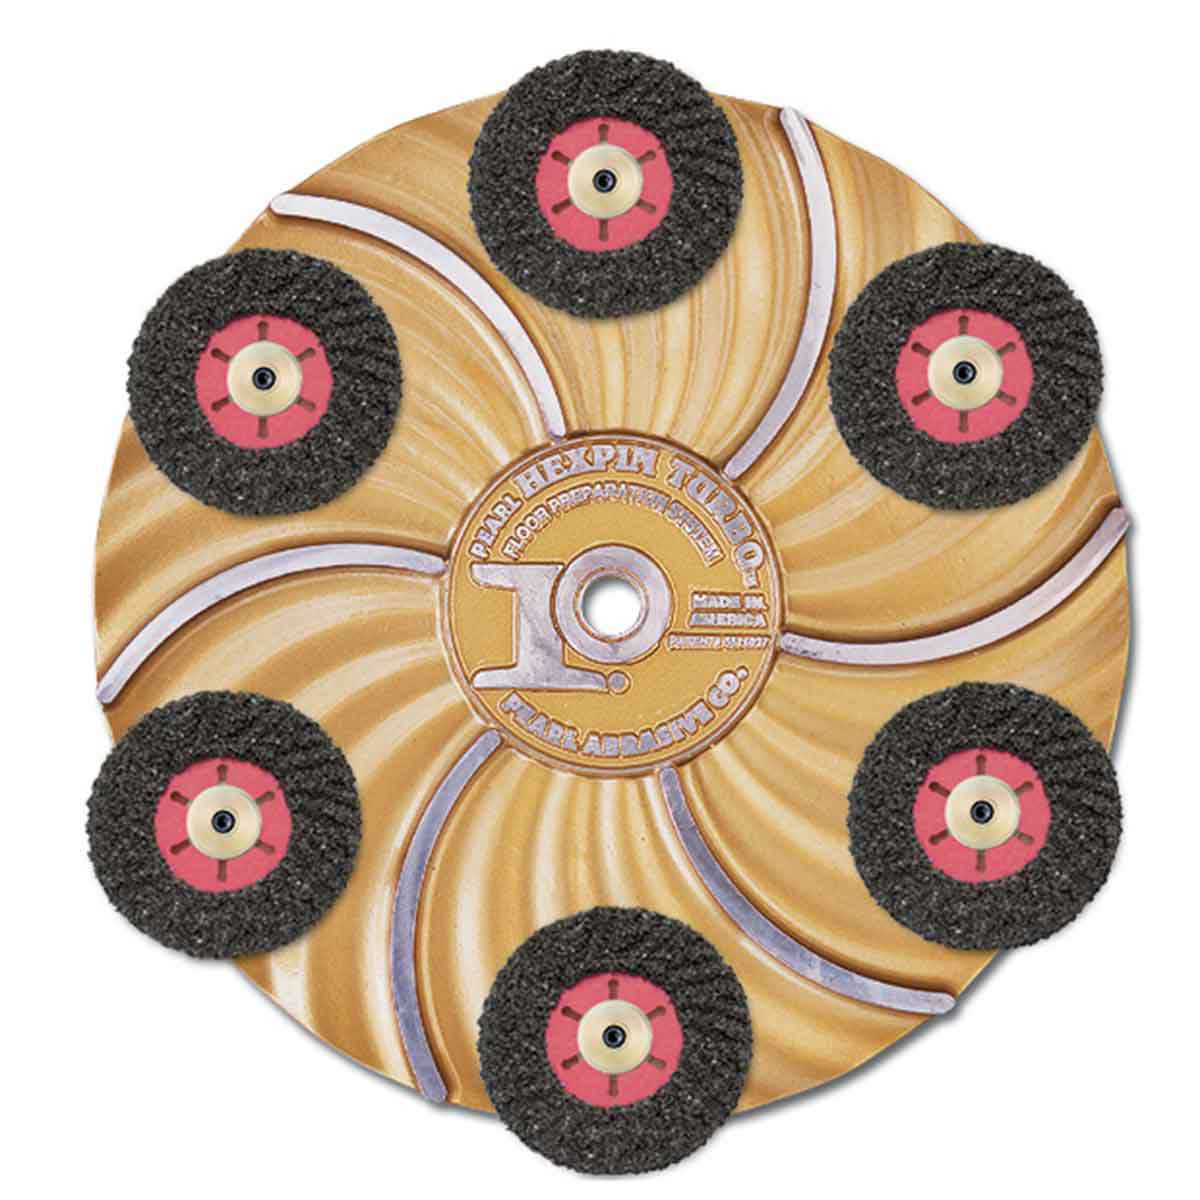 Pearl abrasive Turbo-cut disc